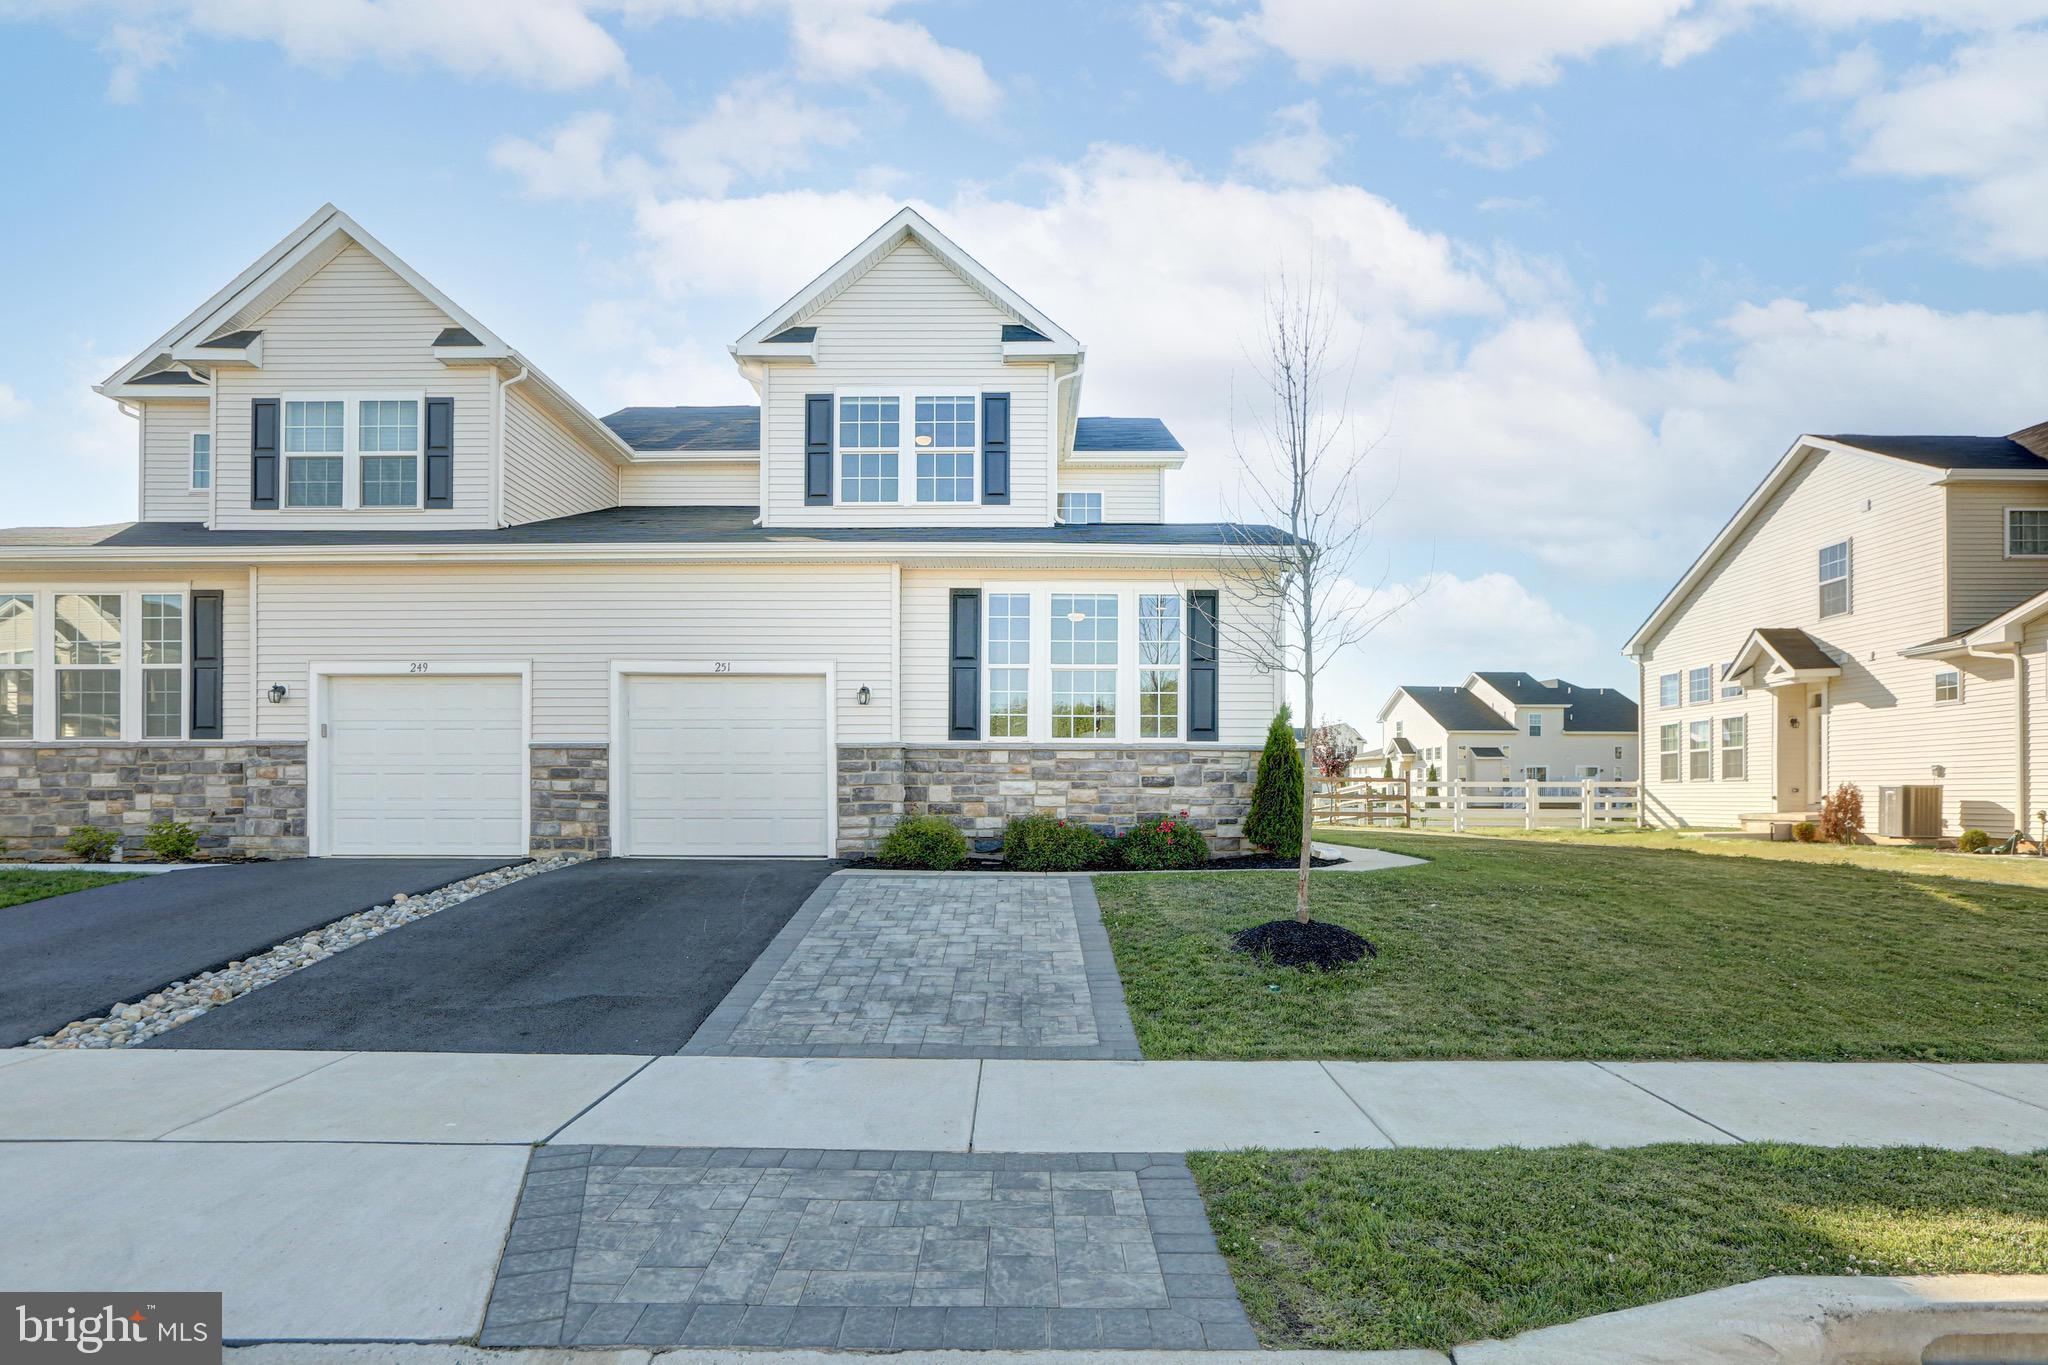 Gorgeous twin home now available for one lucky new owner in Hyetts Crossing of Middletown!